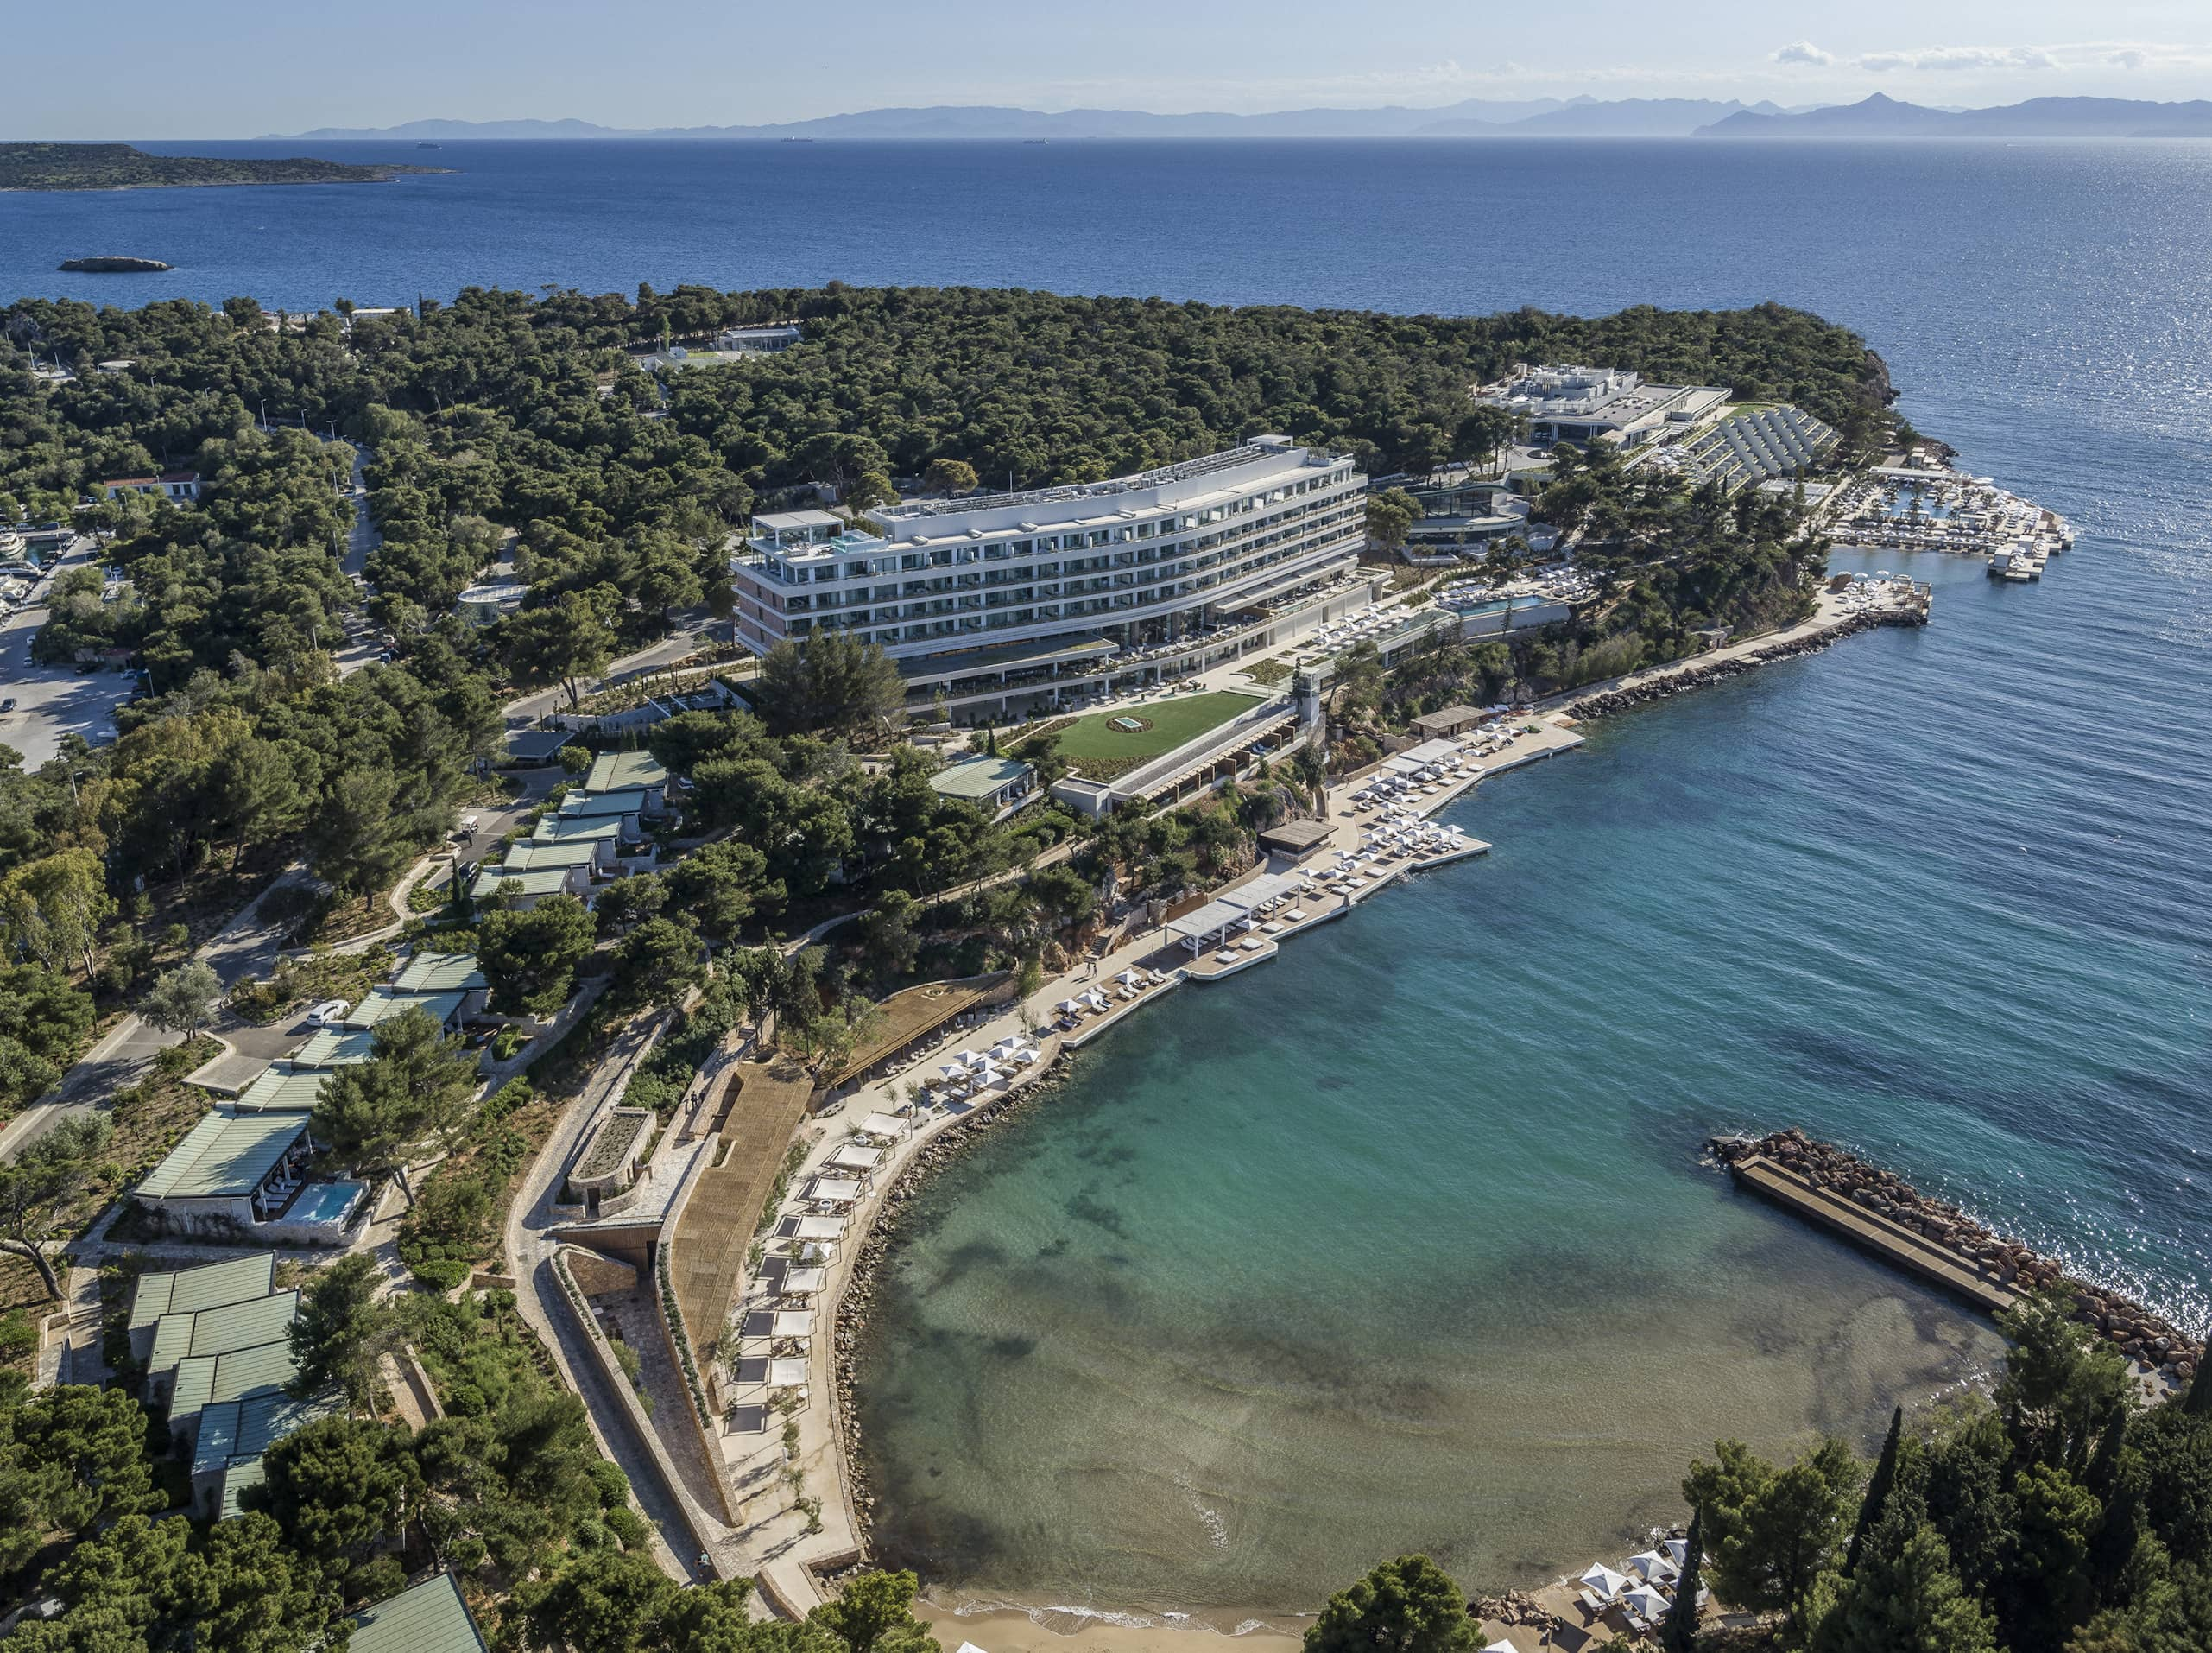 Cruise to the Greek Islands from our iconic hotel.